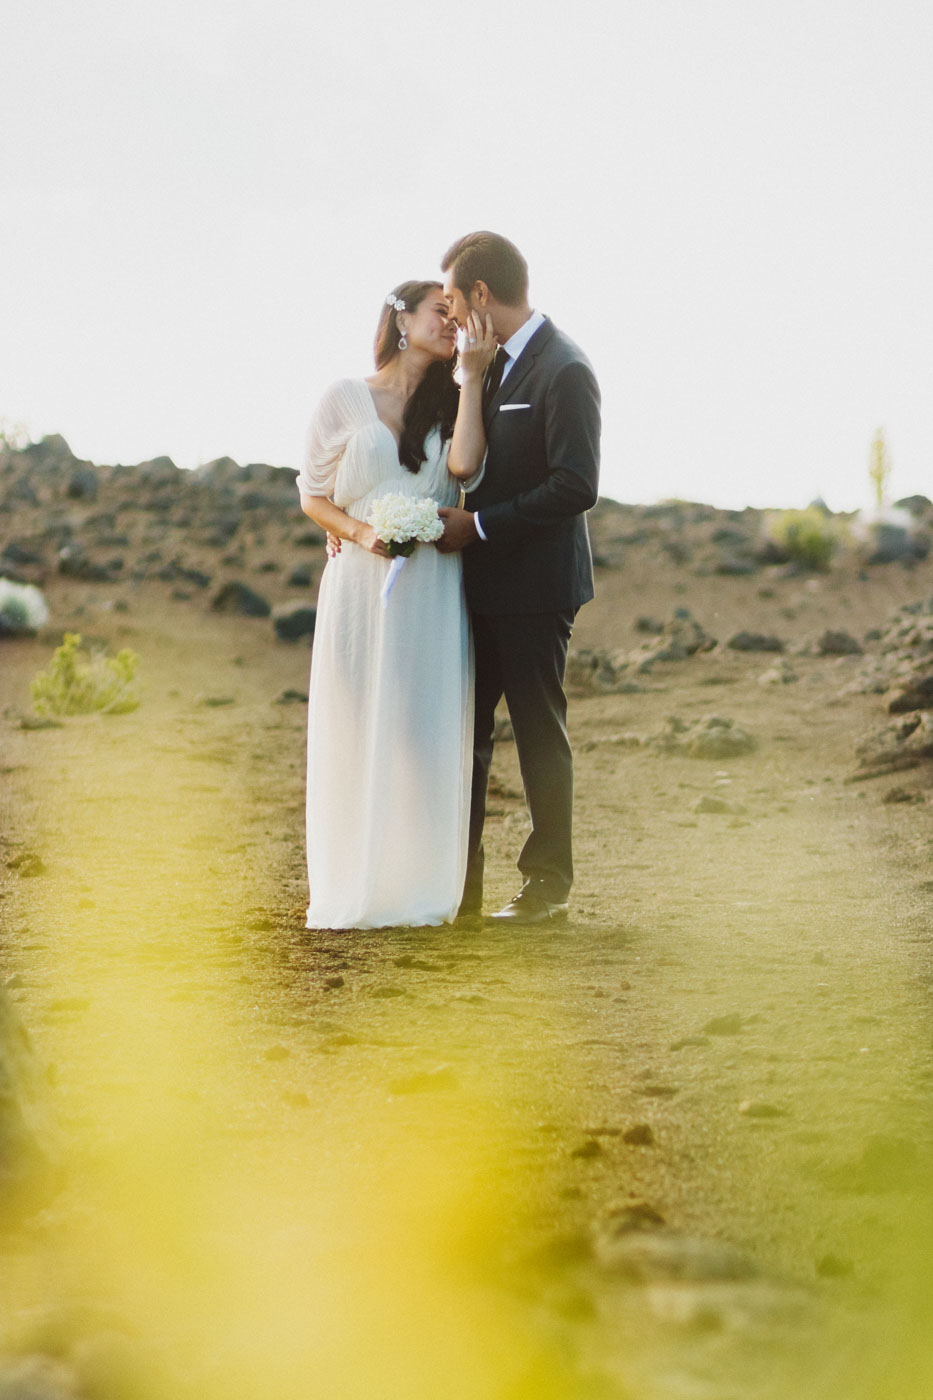 maui wedding photographer_58.jpg